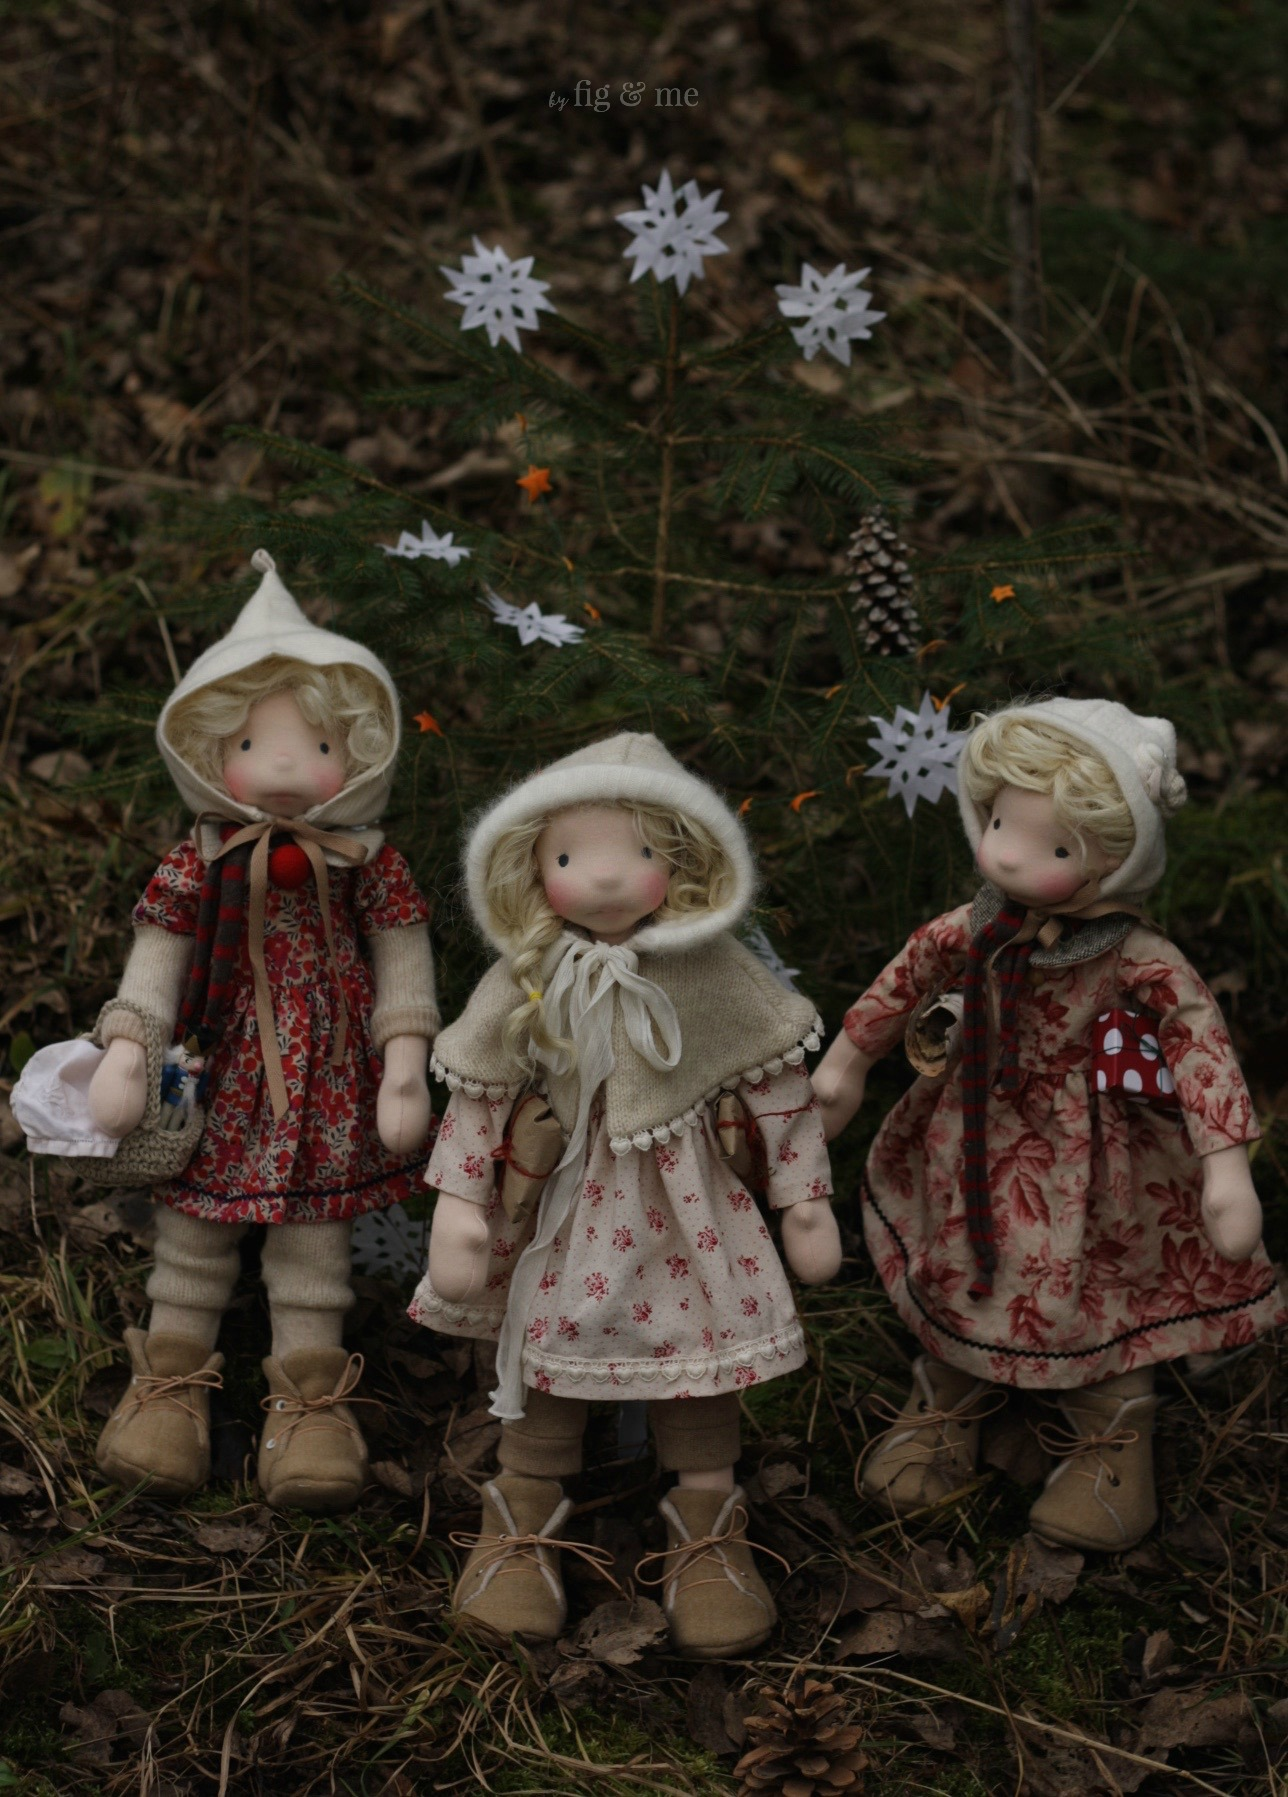 Mahthildis, Freyja and Sigrún, three little sisters dressing a Christmas tree in the forest, by Fig and Me.